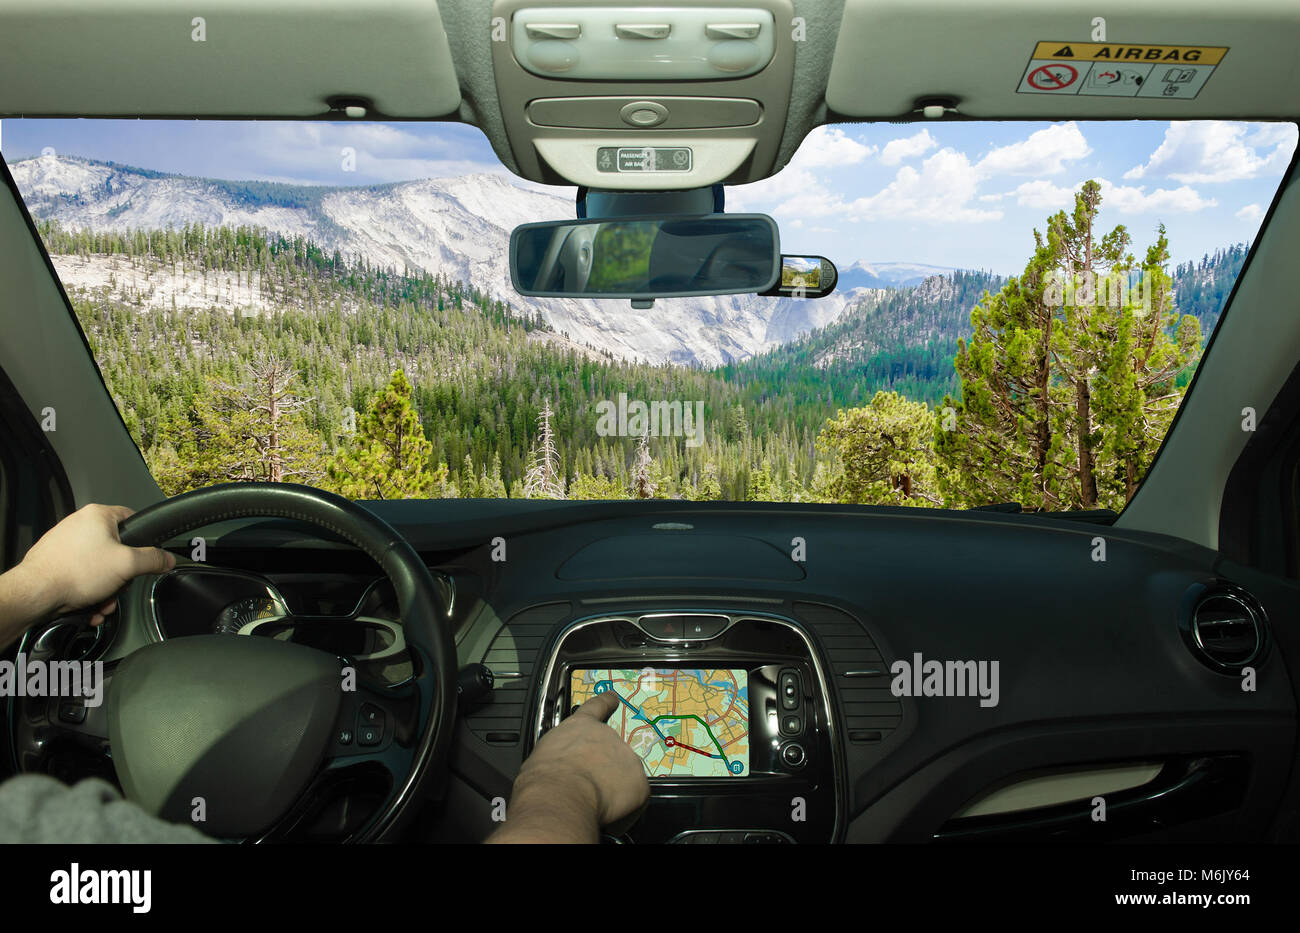 Driving a car while using the touch screen of a GPS navigation system in Yosemite National Park, California, USA - Stock Image